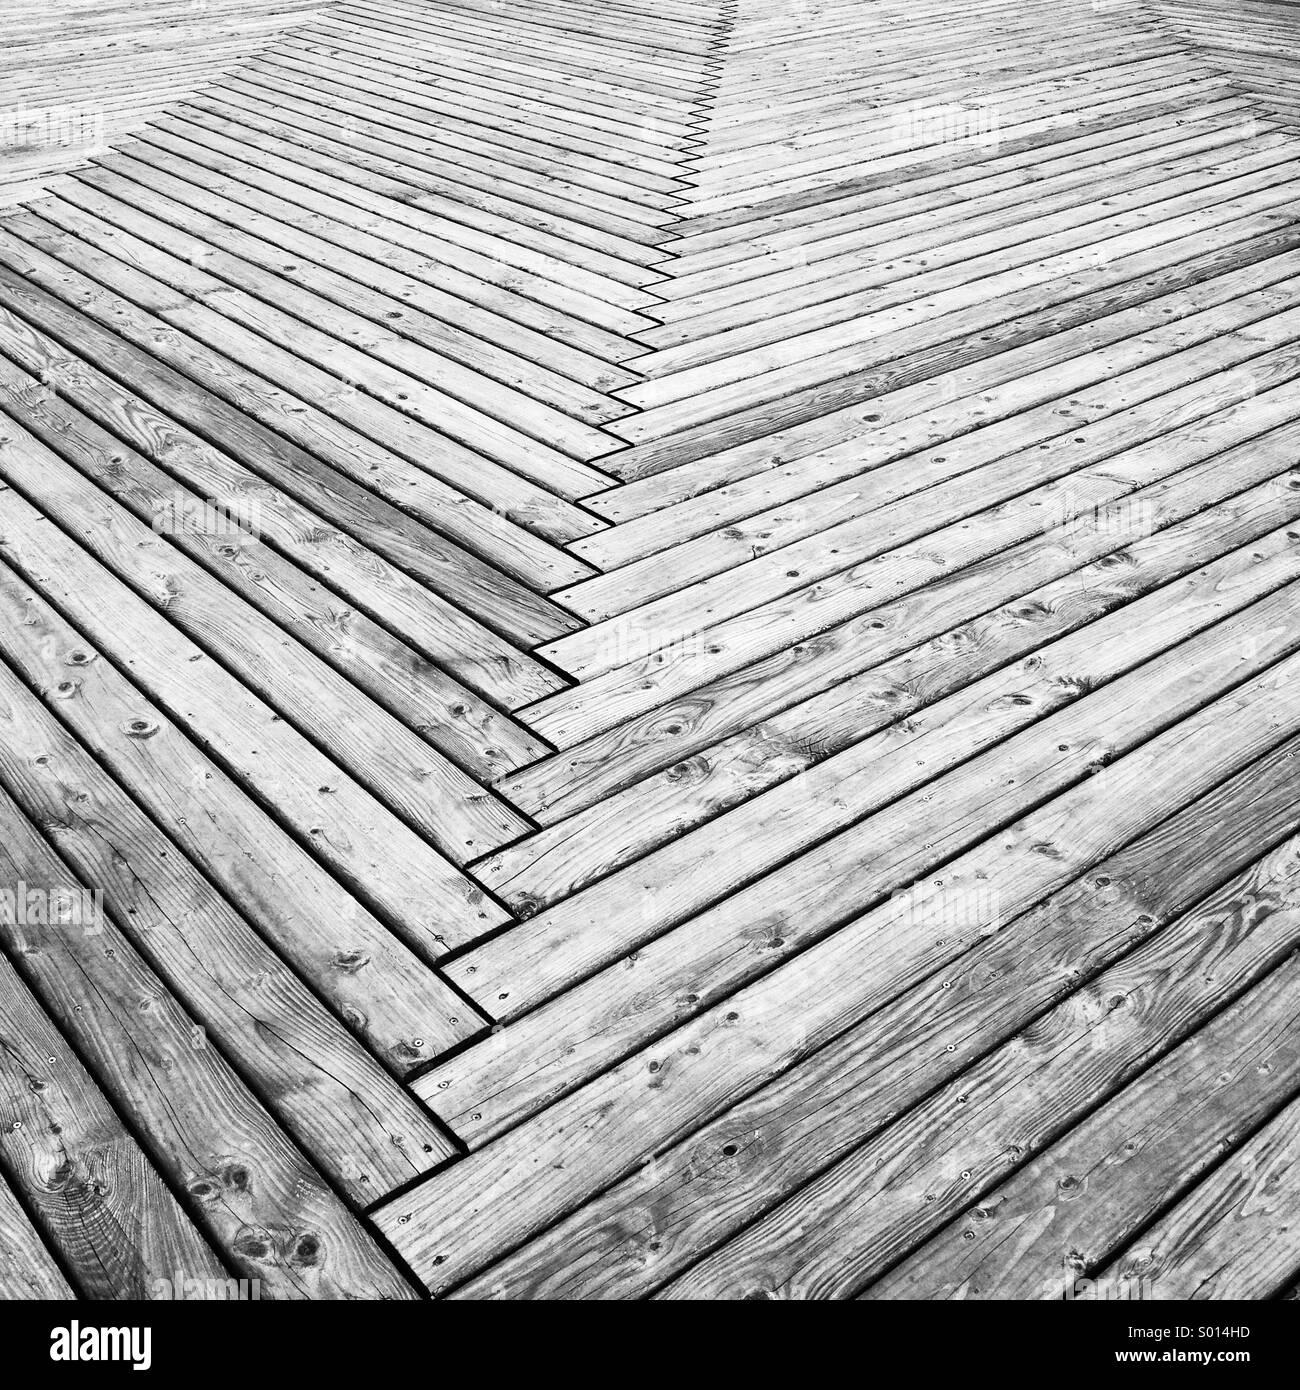 Wooden decking - Stock Image